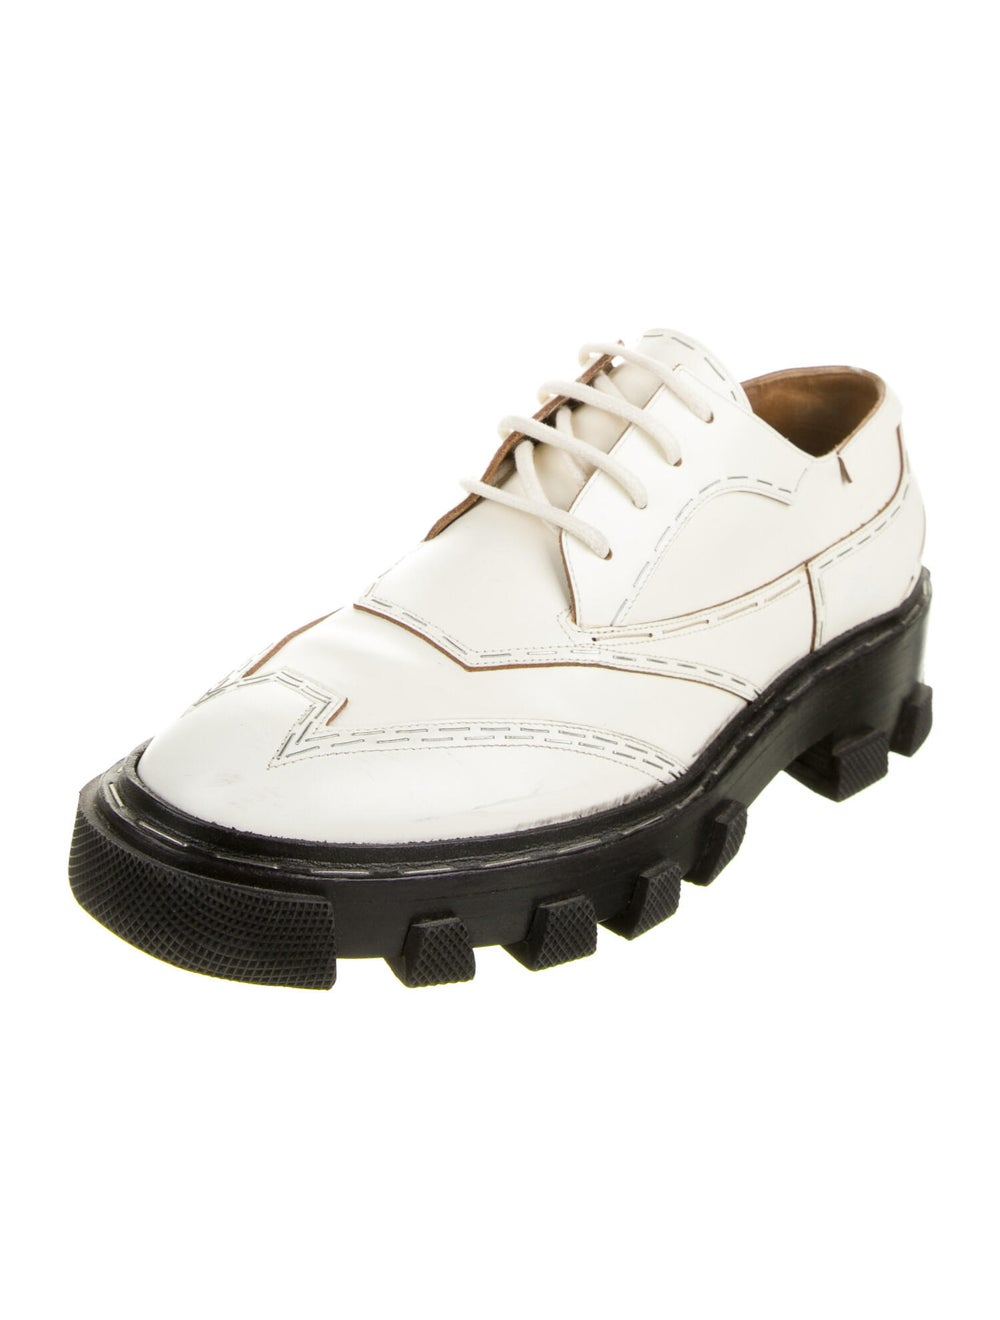 Balenciaga Leather Oxfords - image 2